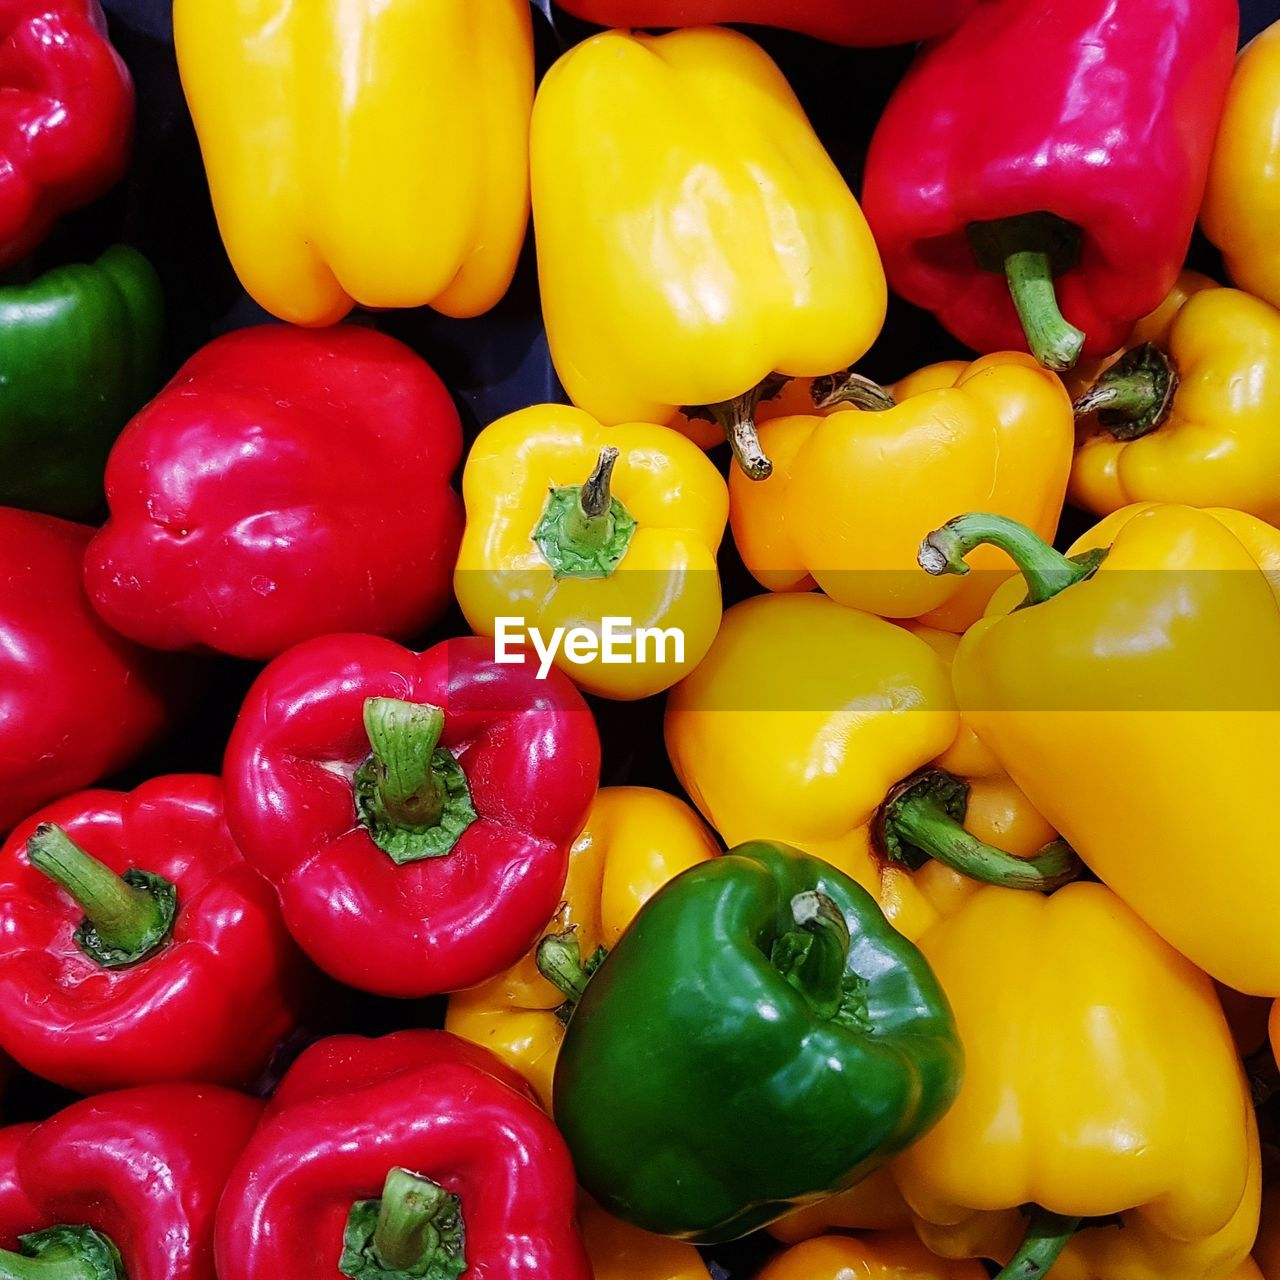 pepper, bell pepper, yellow, full frame, vegetable, backgrounds, red bell pepper, large group of objects, yellow bell pepper, freshness, food and drink, food, still life, red, market, abundance, close-up, no people, for sale, multi colored, paprika